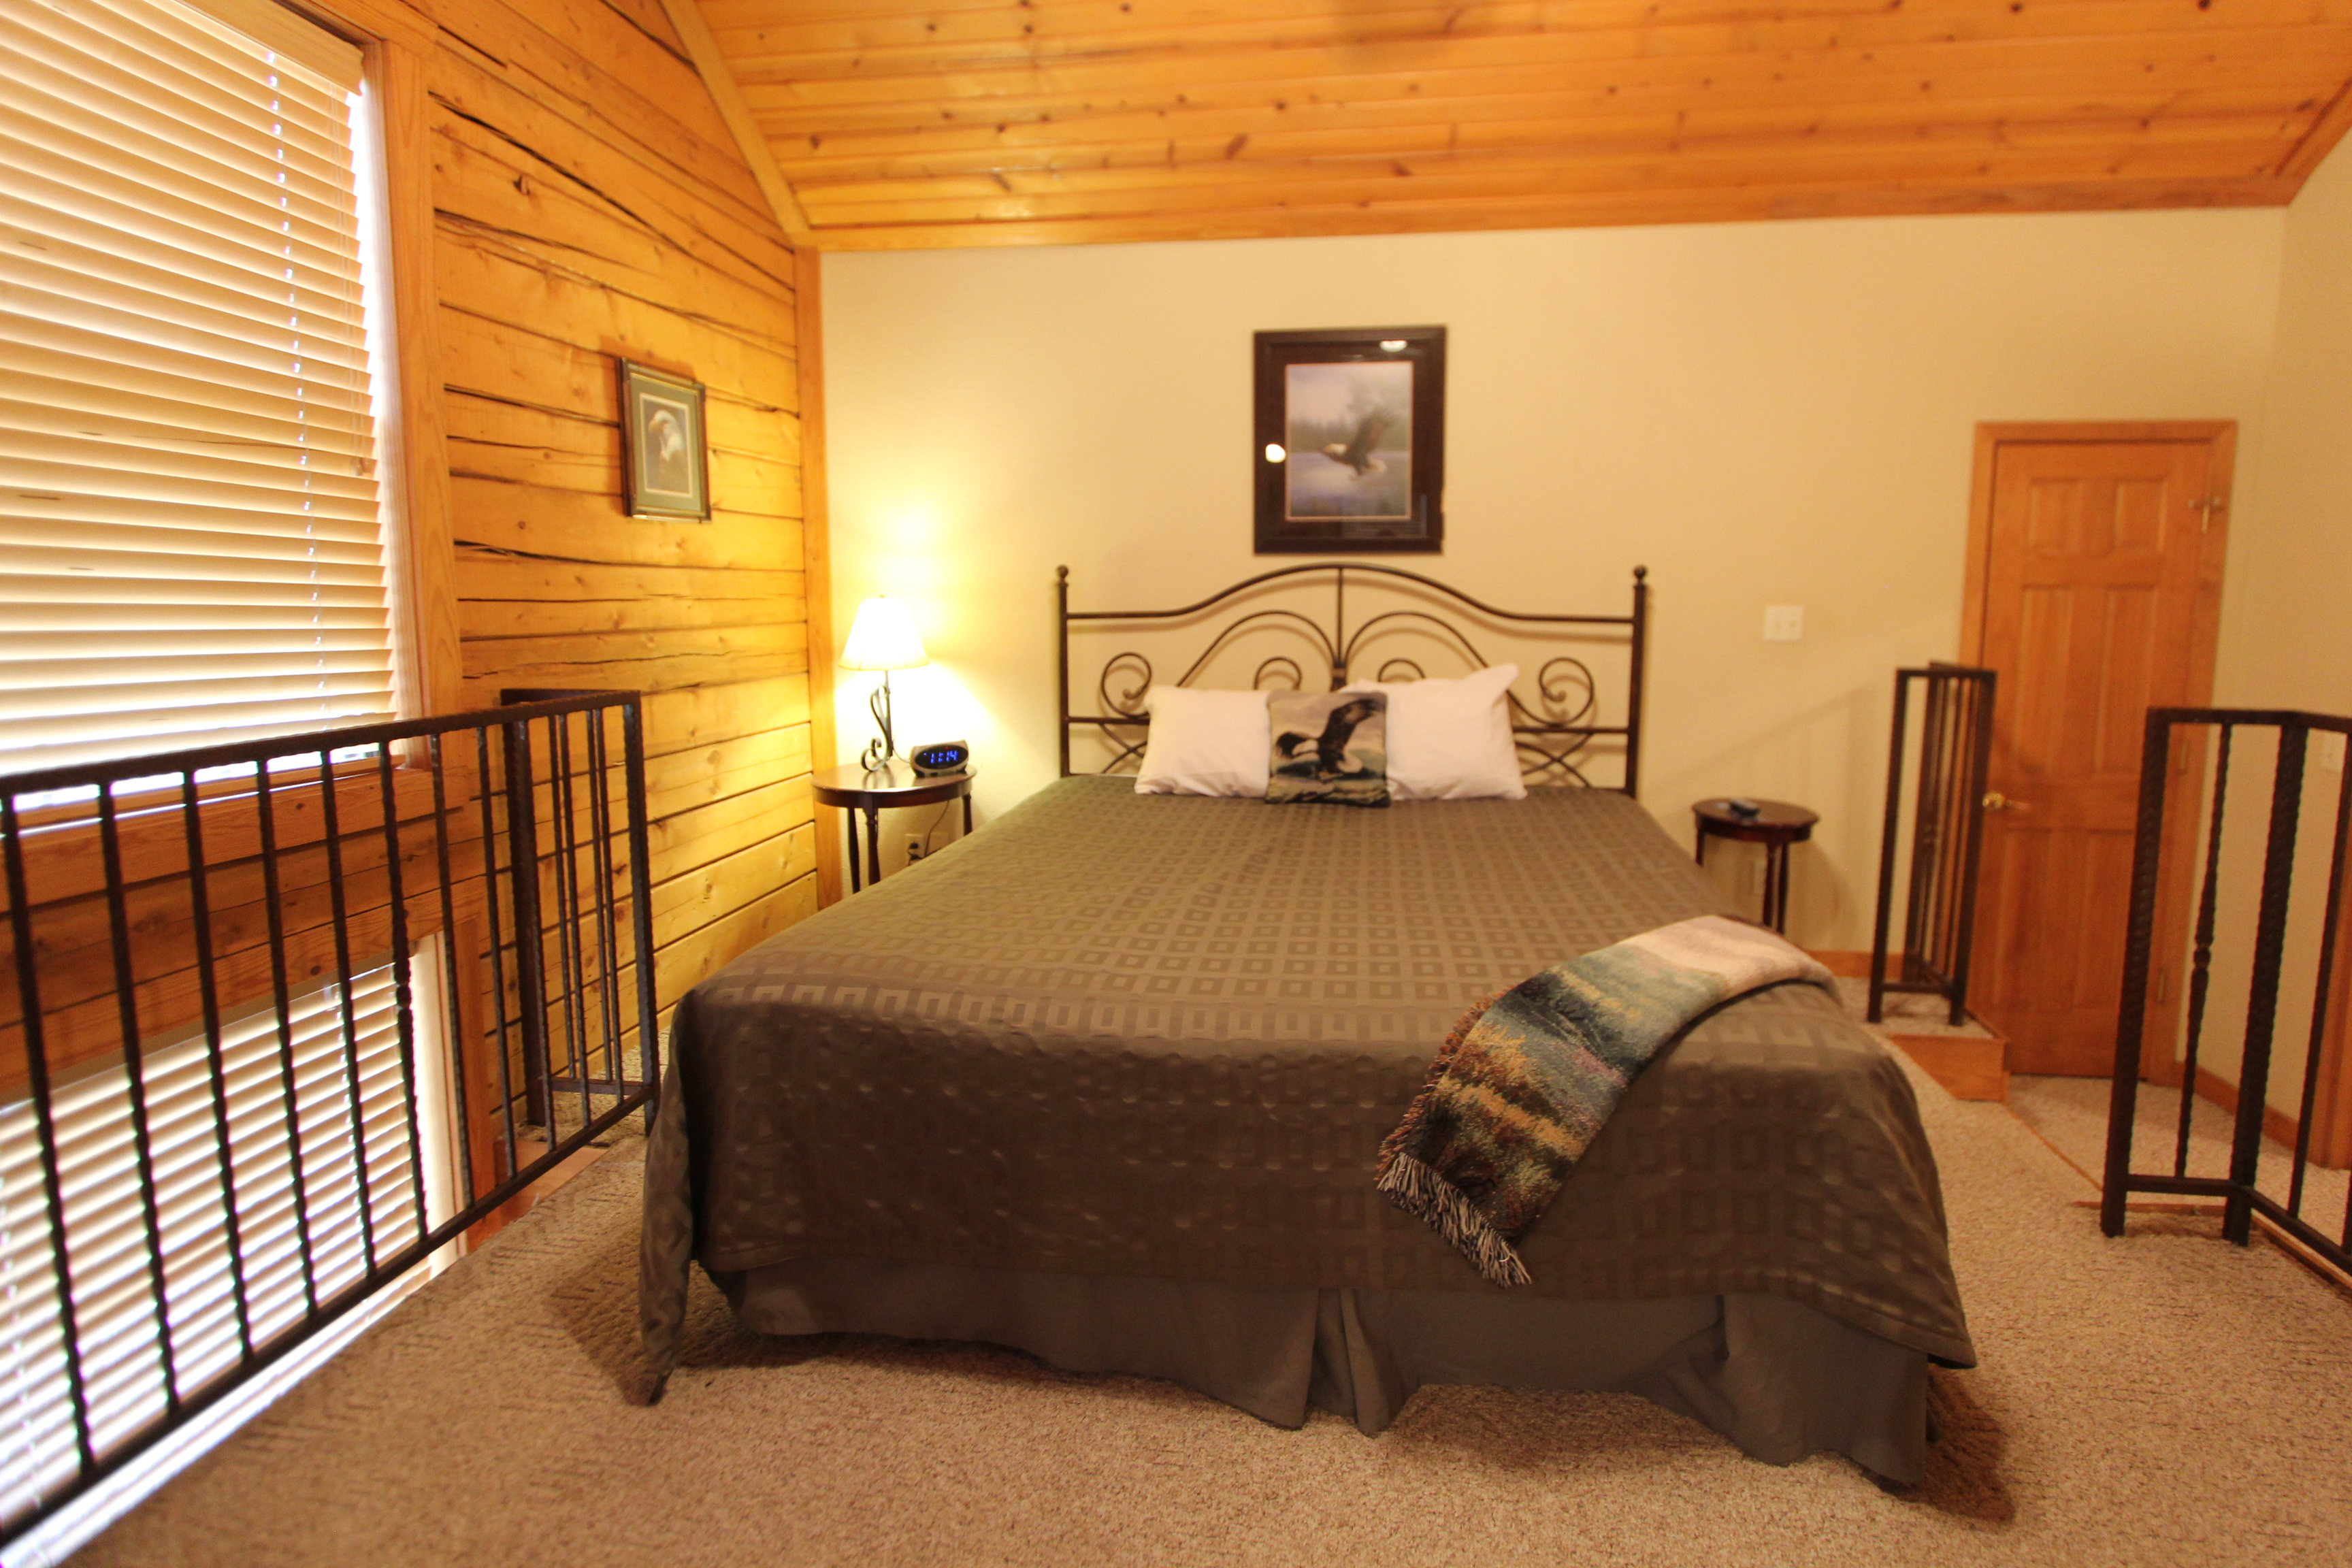 bedroom cabin at vacation branson the moonlight located grand nightly bath fr more mountain rental sunset show rentals cabins images